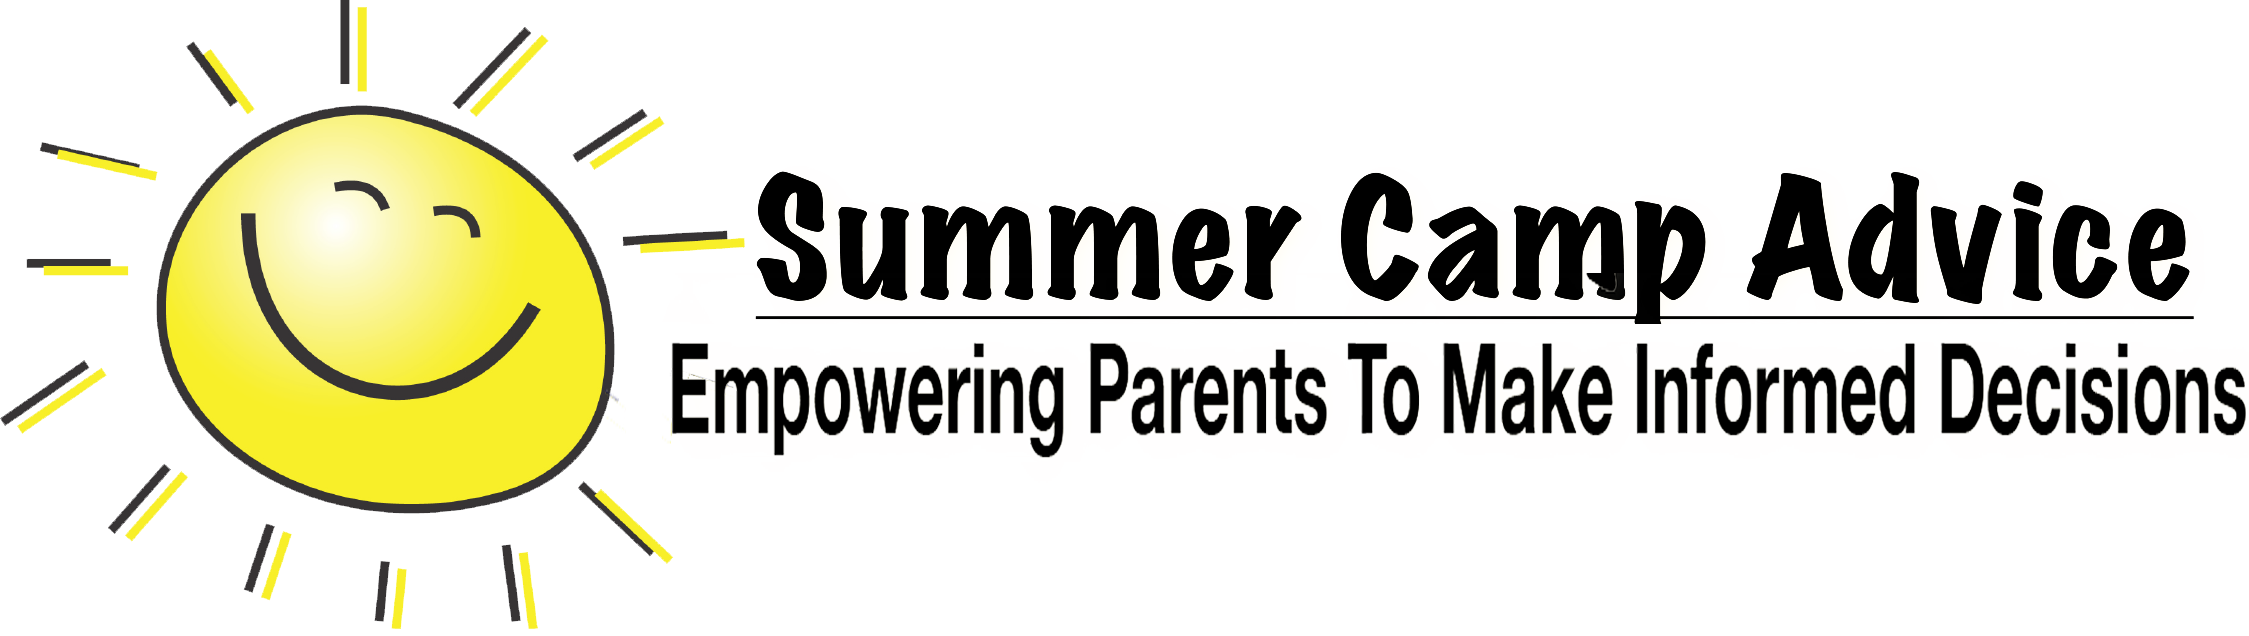 Summer Camp Advice - A Free Guide helping  parents find the best summer camp for their children in the midwest USA